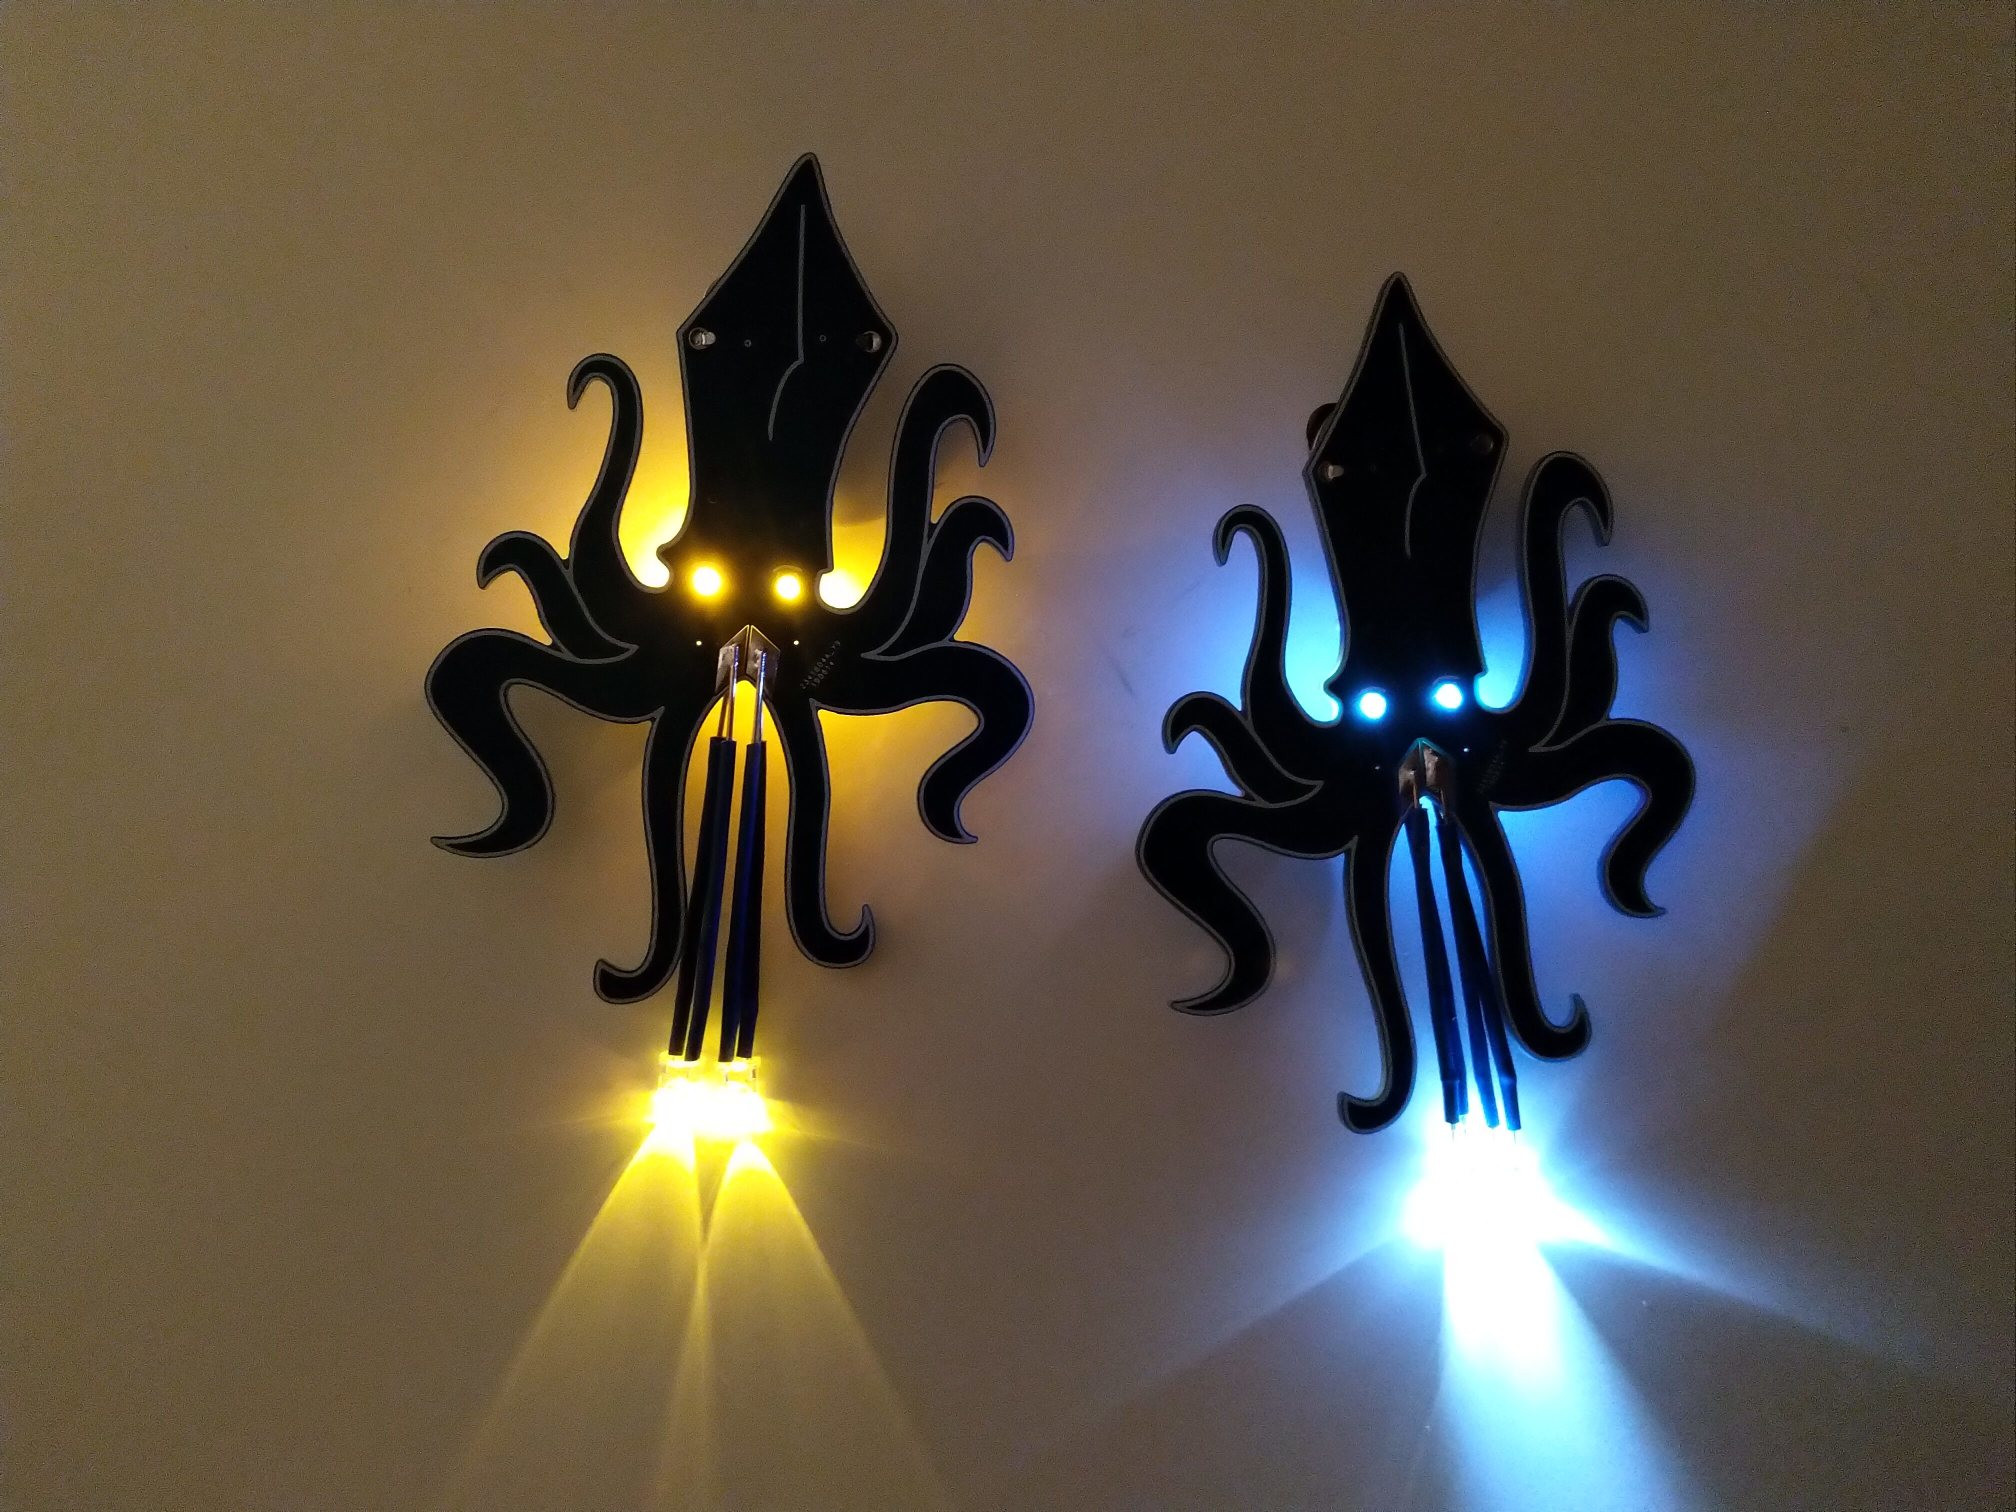 Shining squids in dark